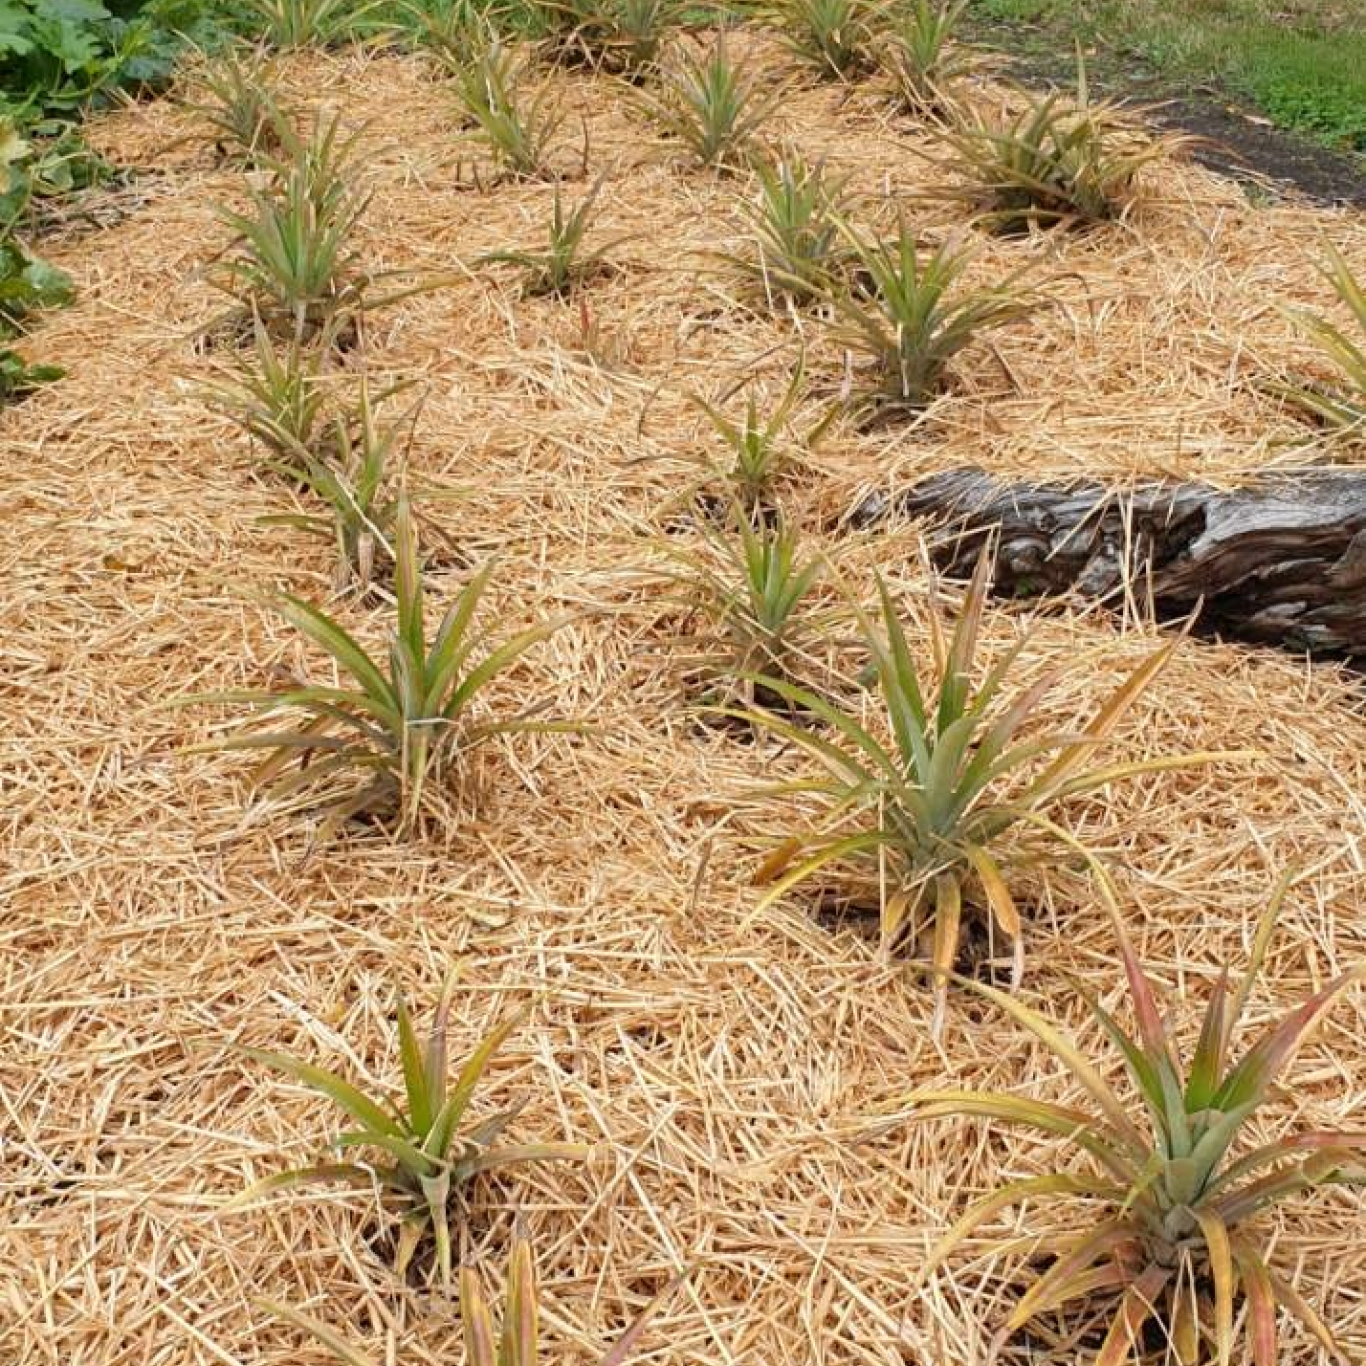 Rows of pineapple plants.